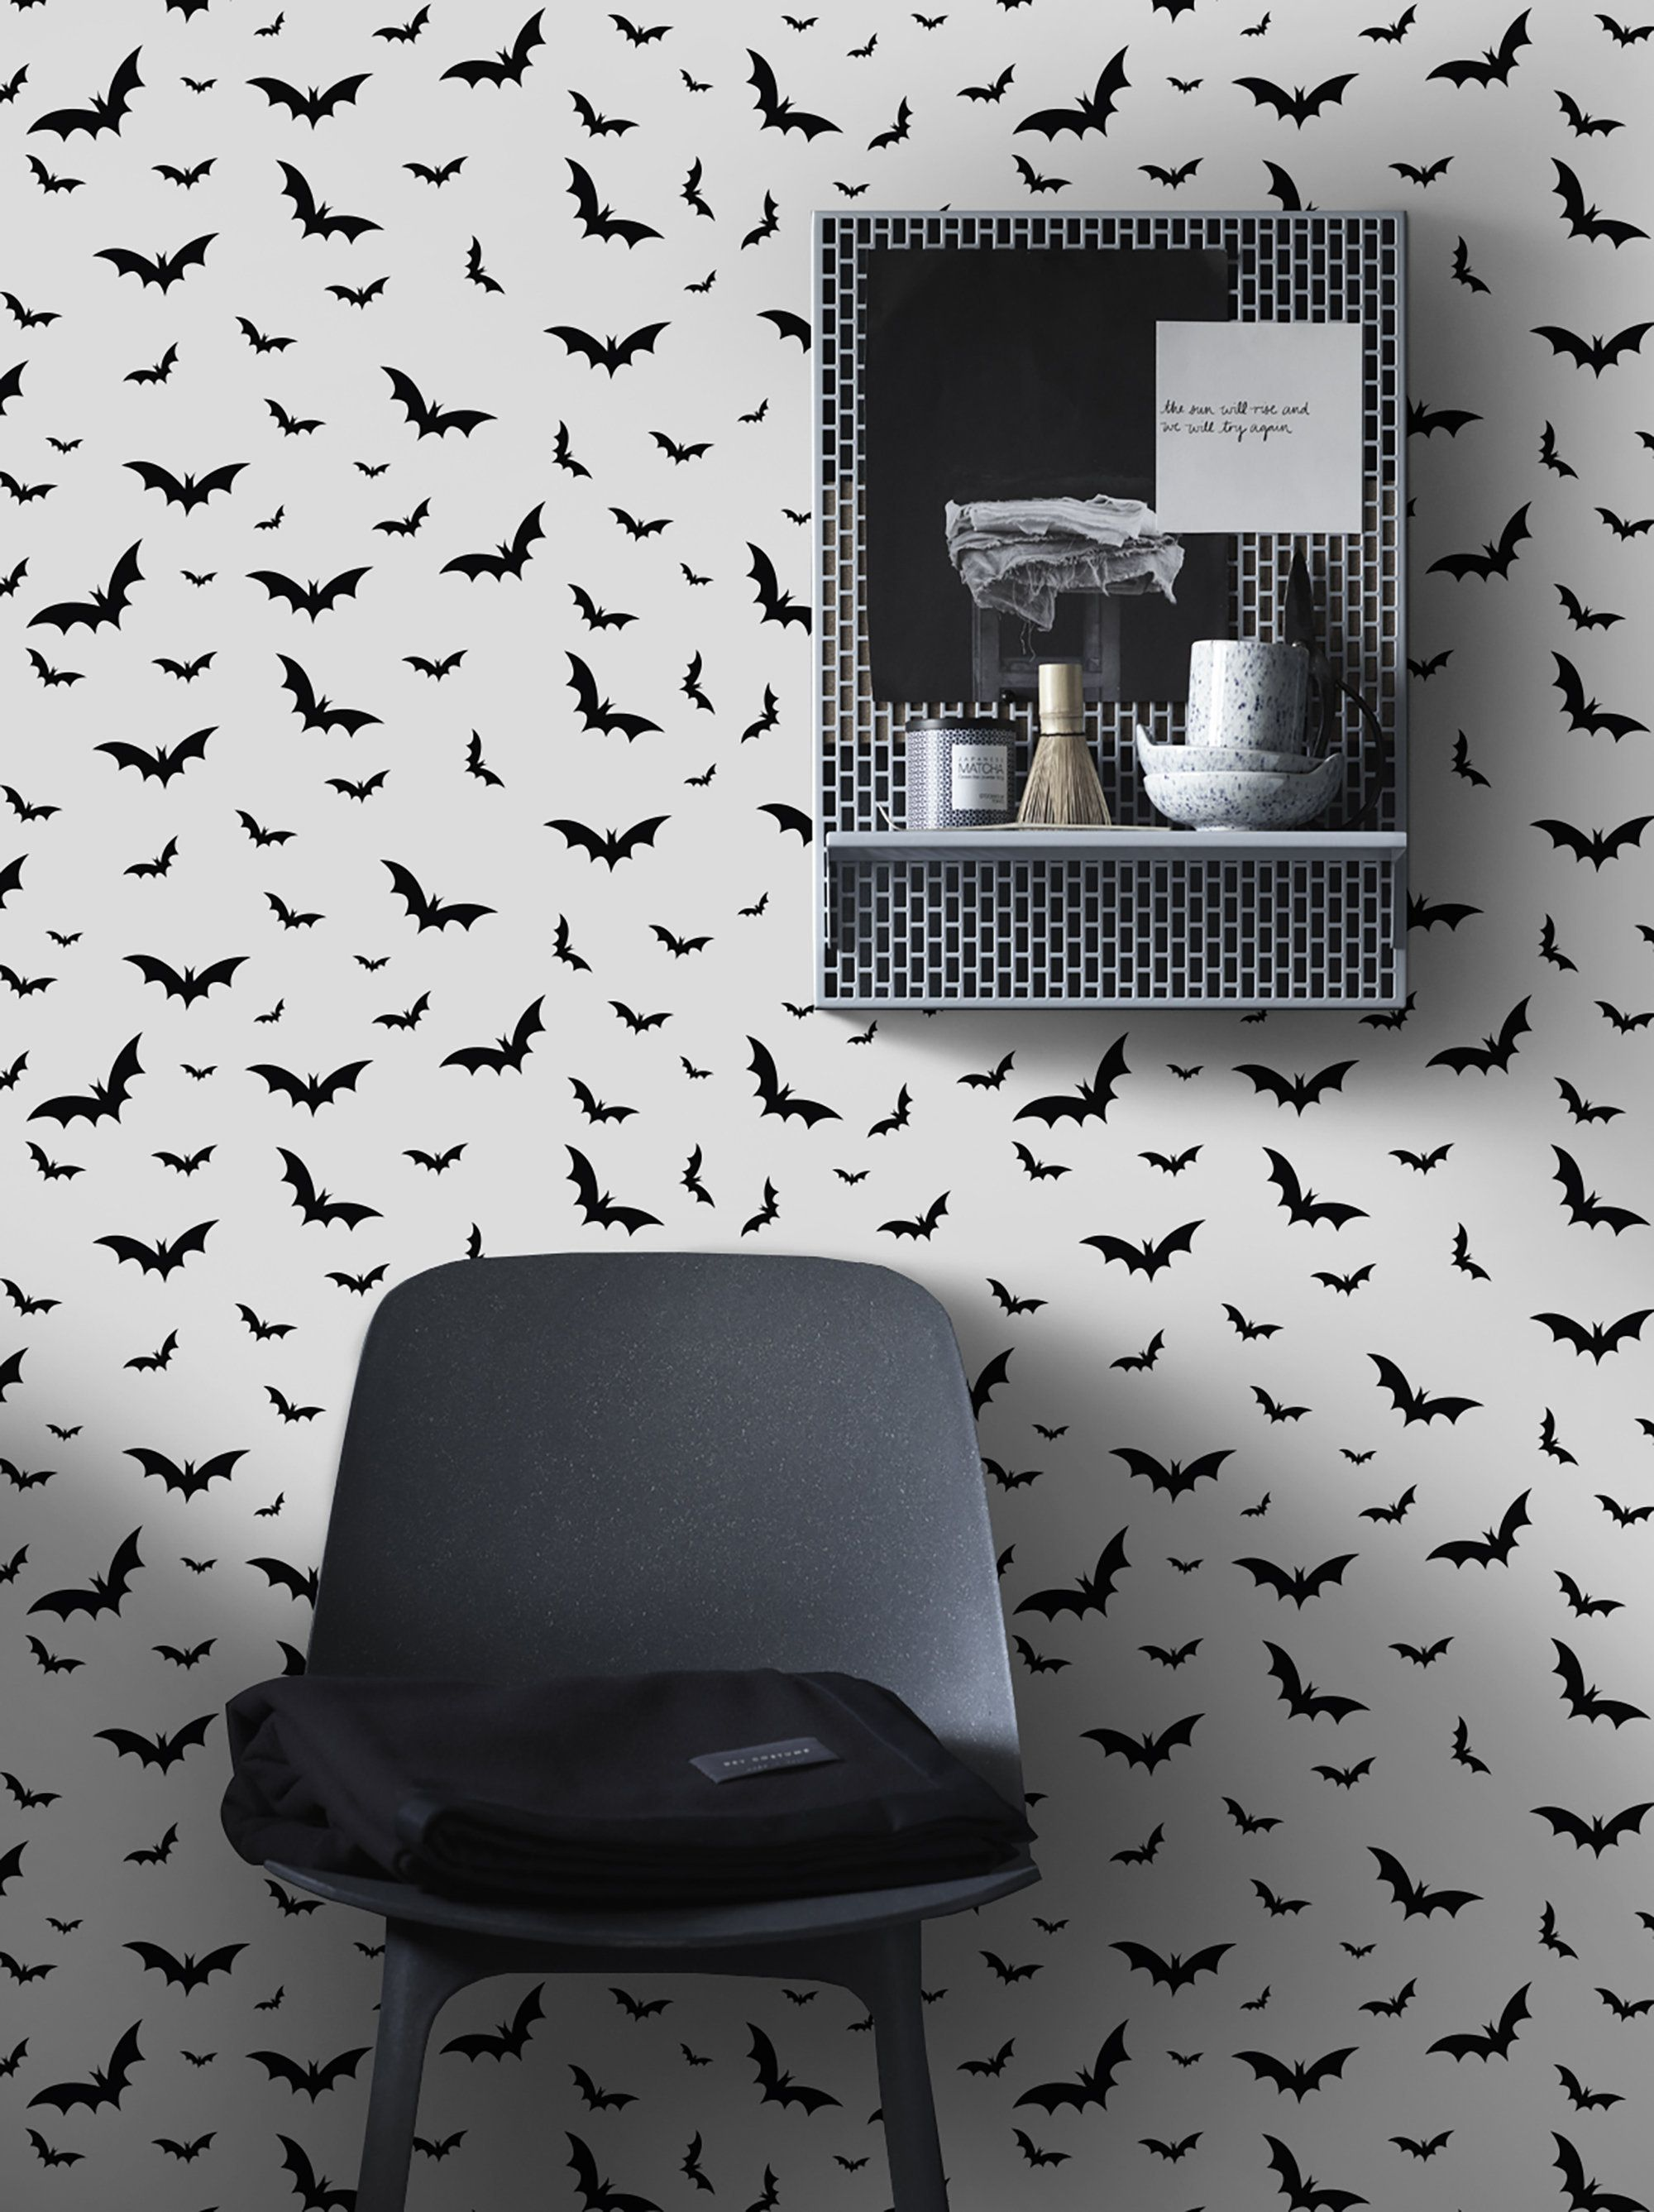 Black And White Bat Removable Wallpaper Bird Self Adhesive Etsy In 2020 Removable Wallpaper Minimalist Wall Stickers Stripe Removable Wallpaper